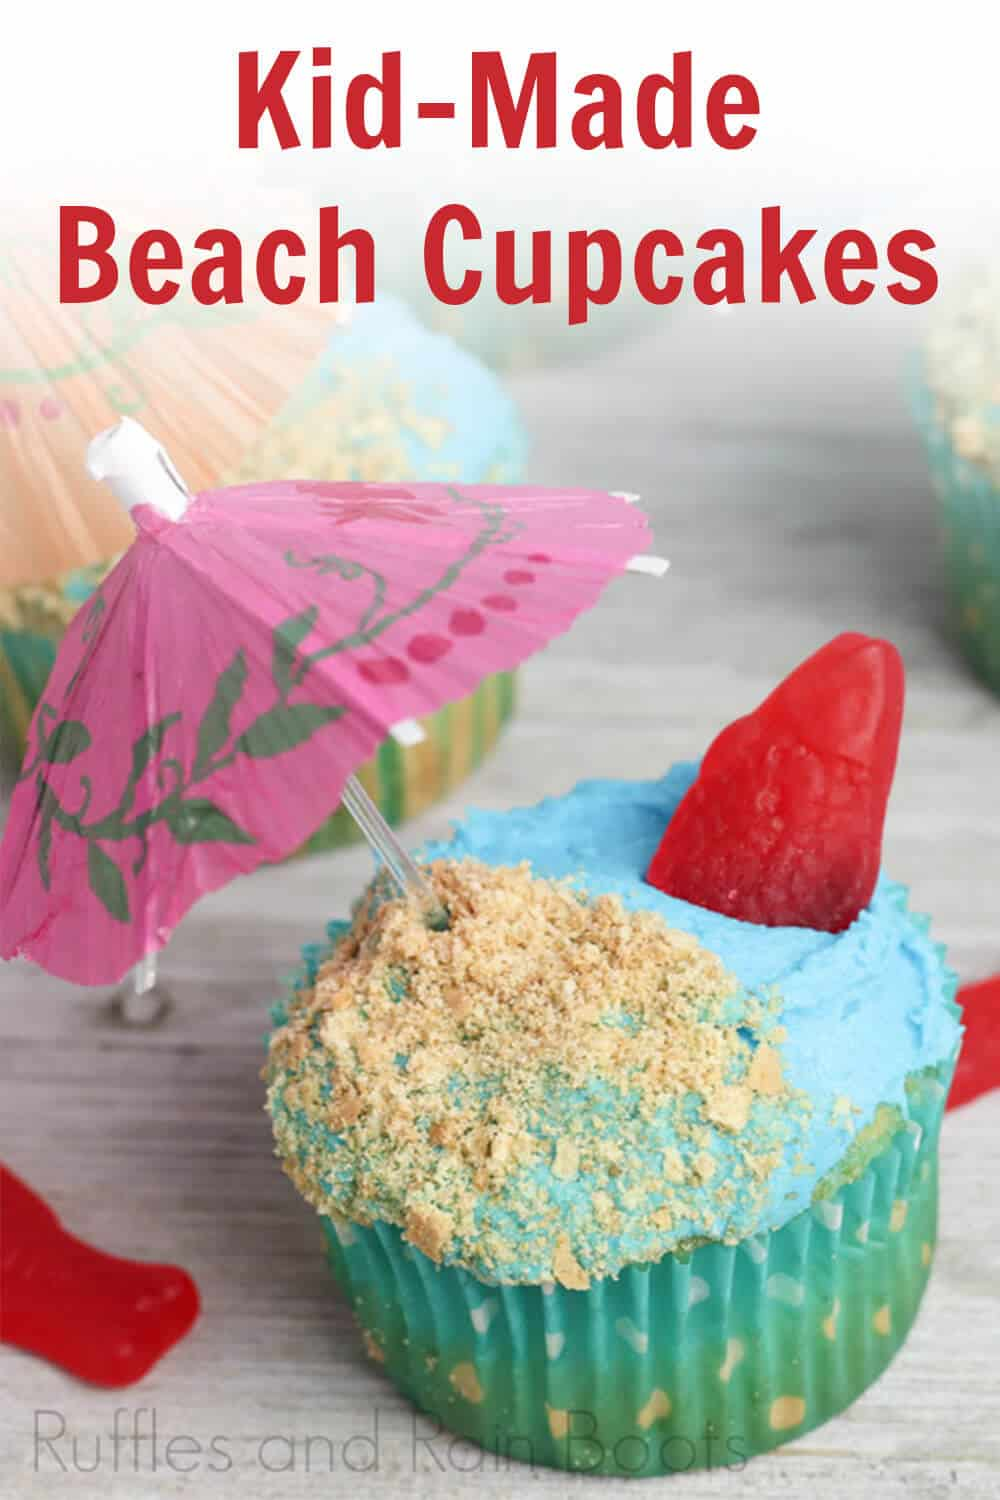 close-up of single beach cupcakes for kids to make on a light beige background with scattered red candy fish with text which reads kid-made beach cupcakes